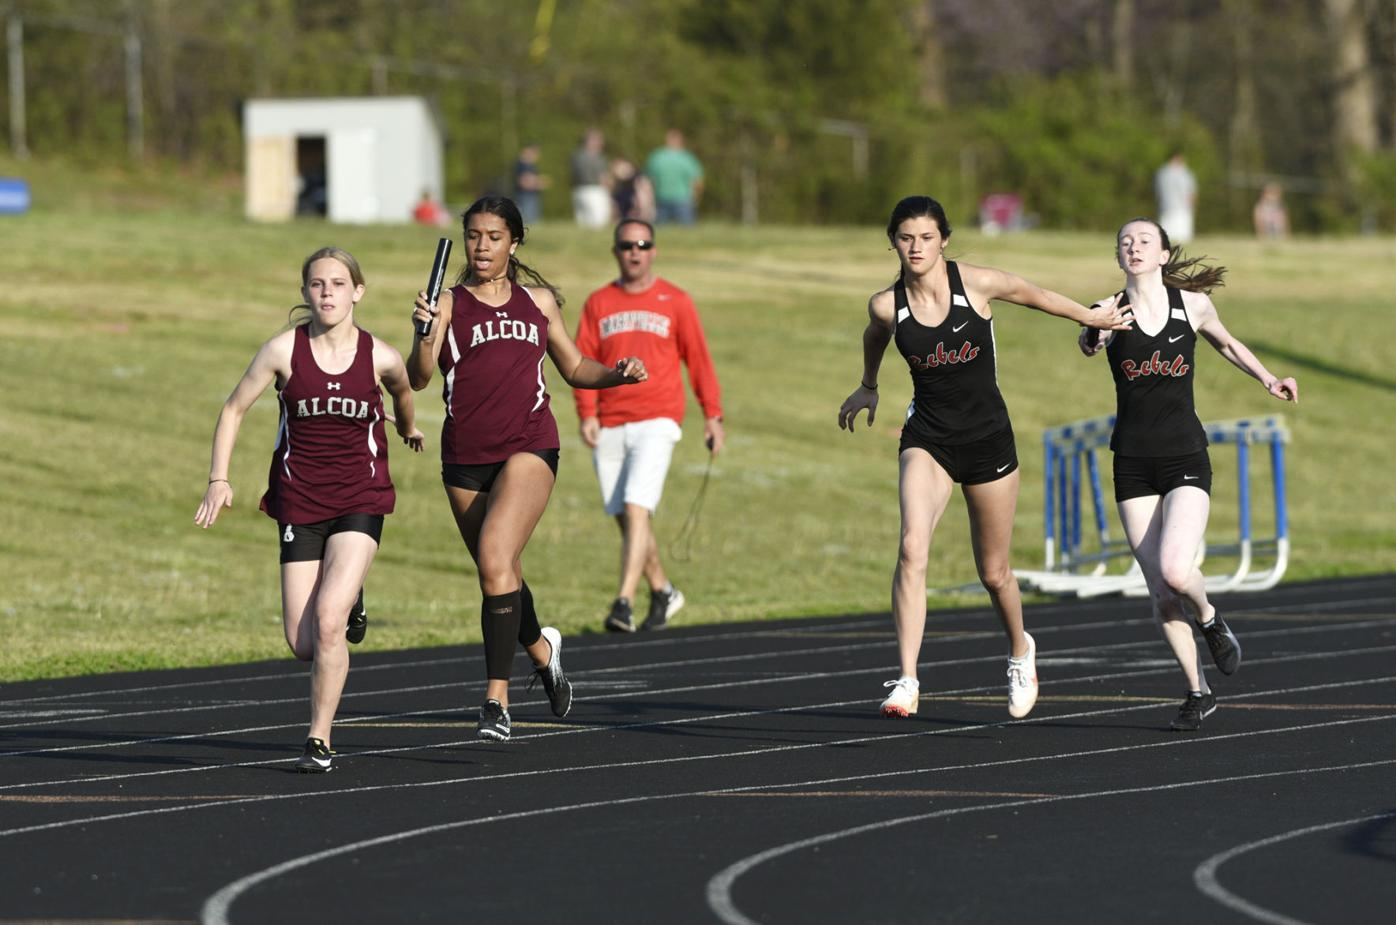 TRACK AND FIELD Alcoa's Olivia Baumann and Asia Cole Maryville's Kendall Whitehead and Jasmine Mayden